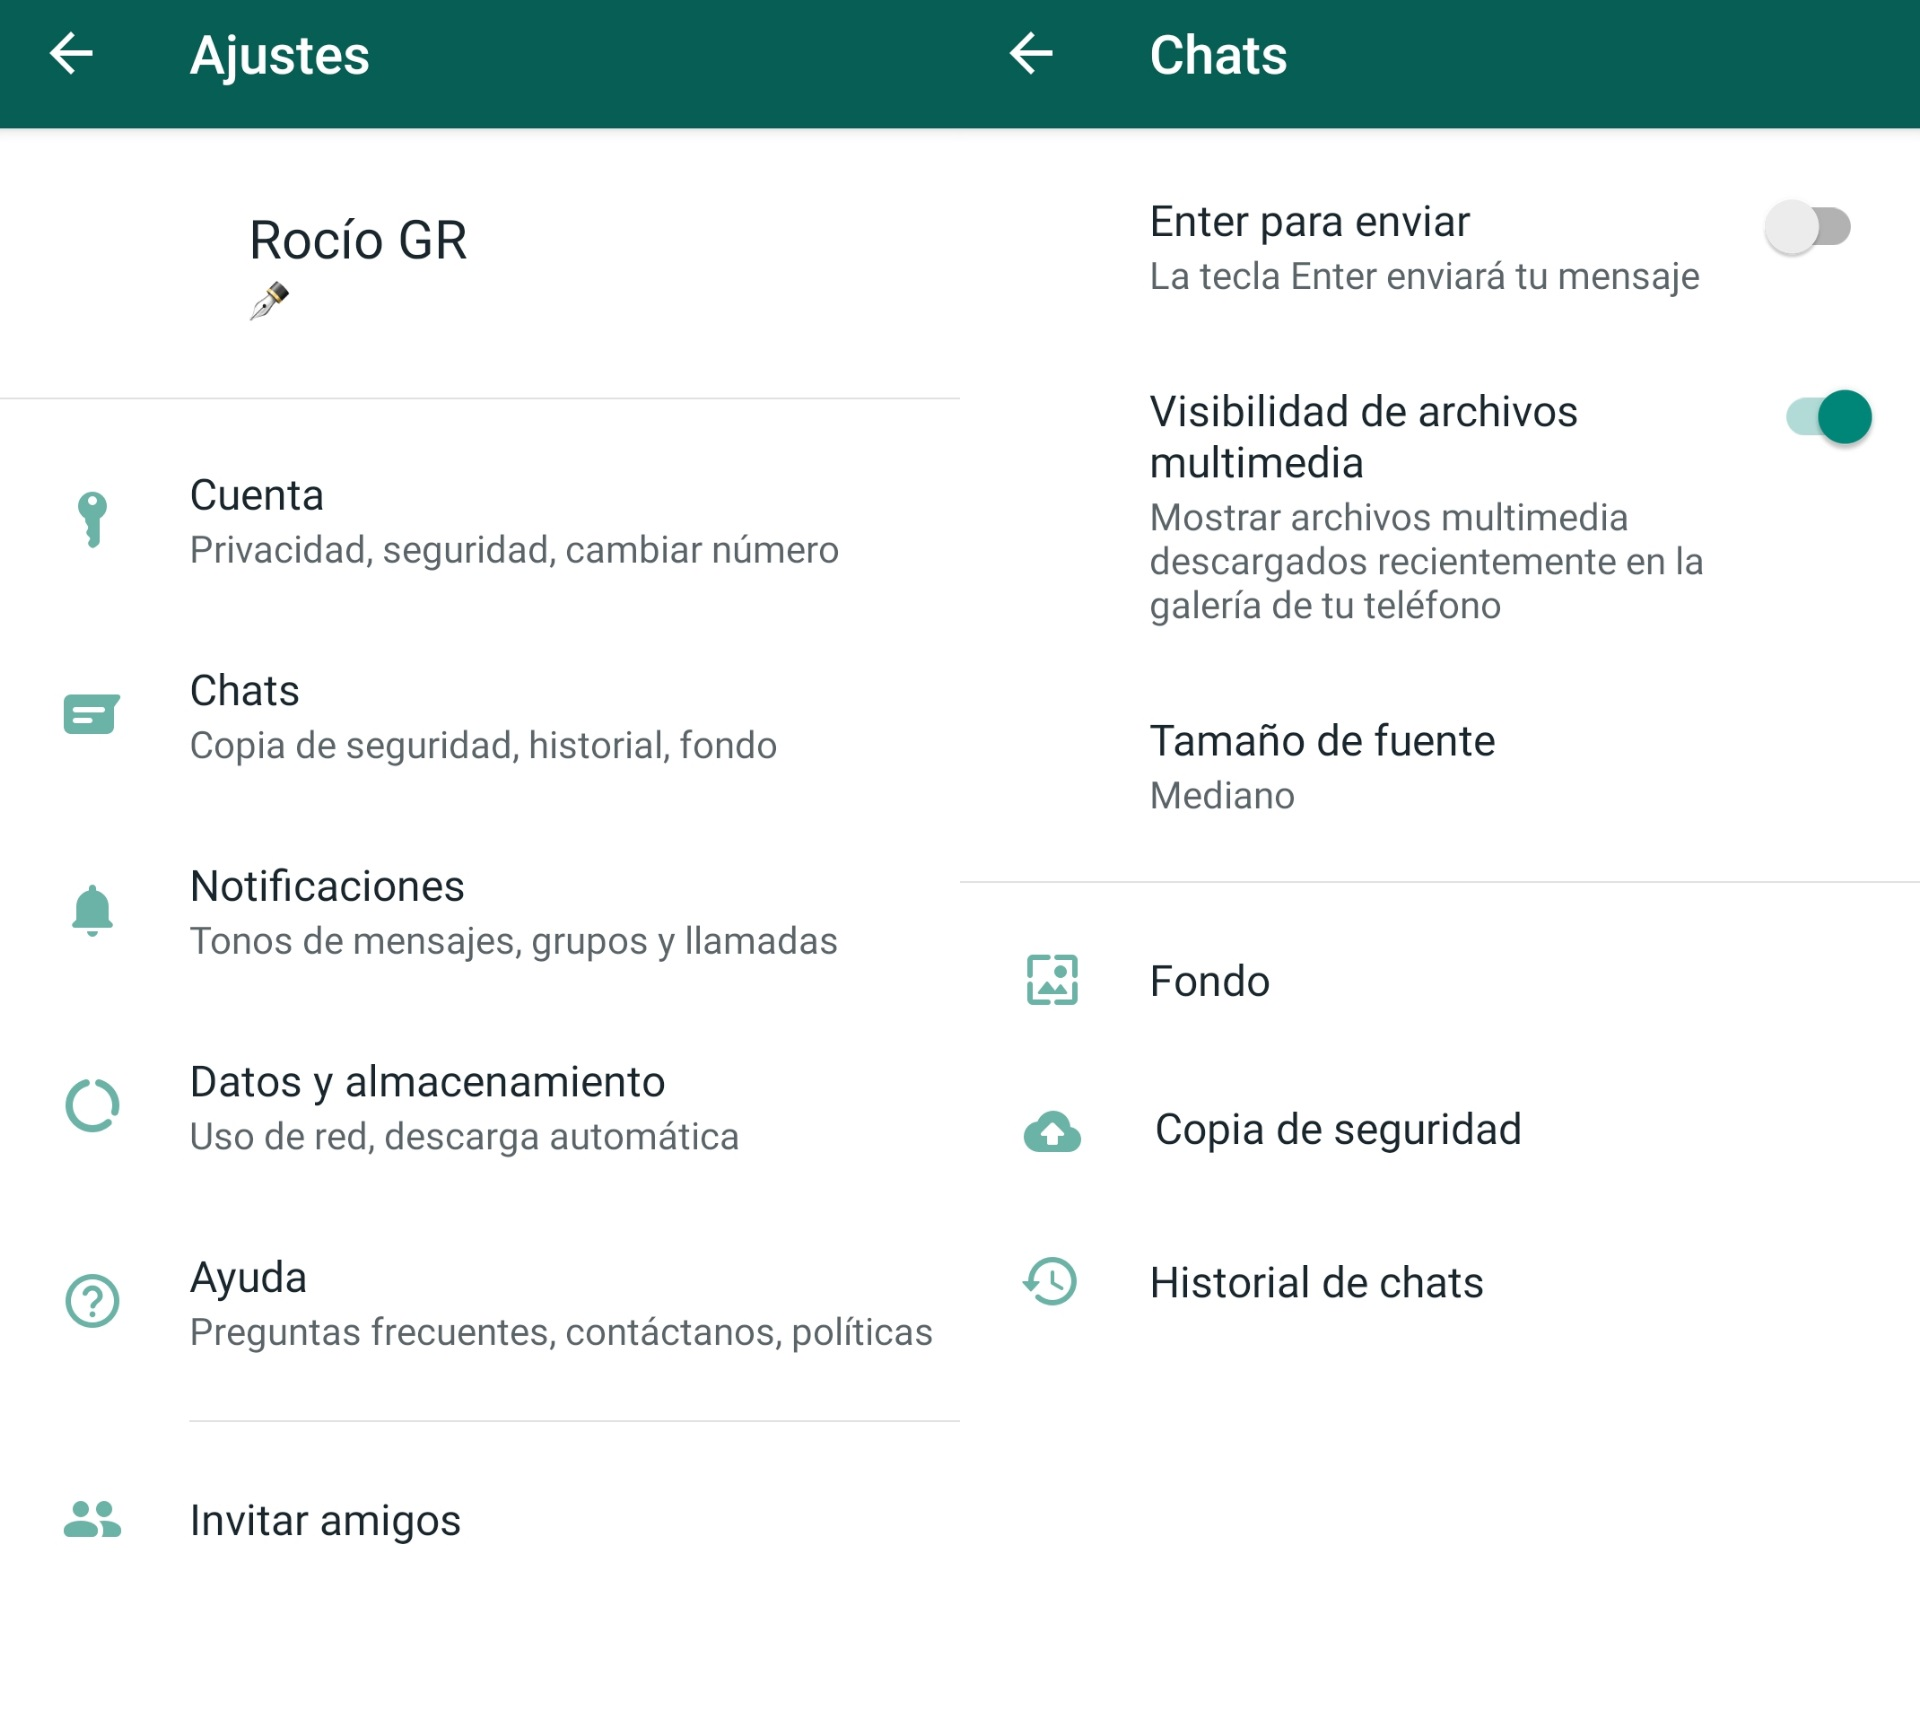 Copia Seguridad De Whatsapp